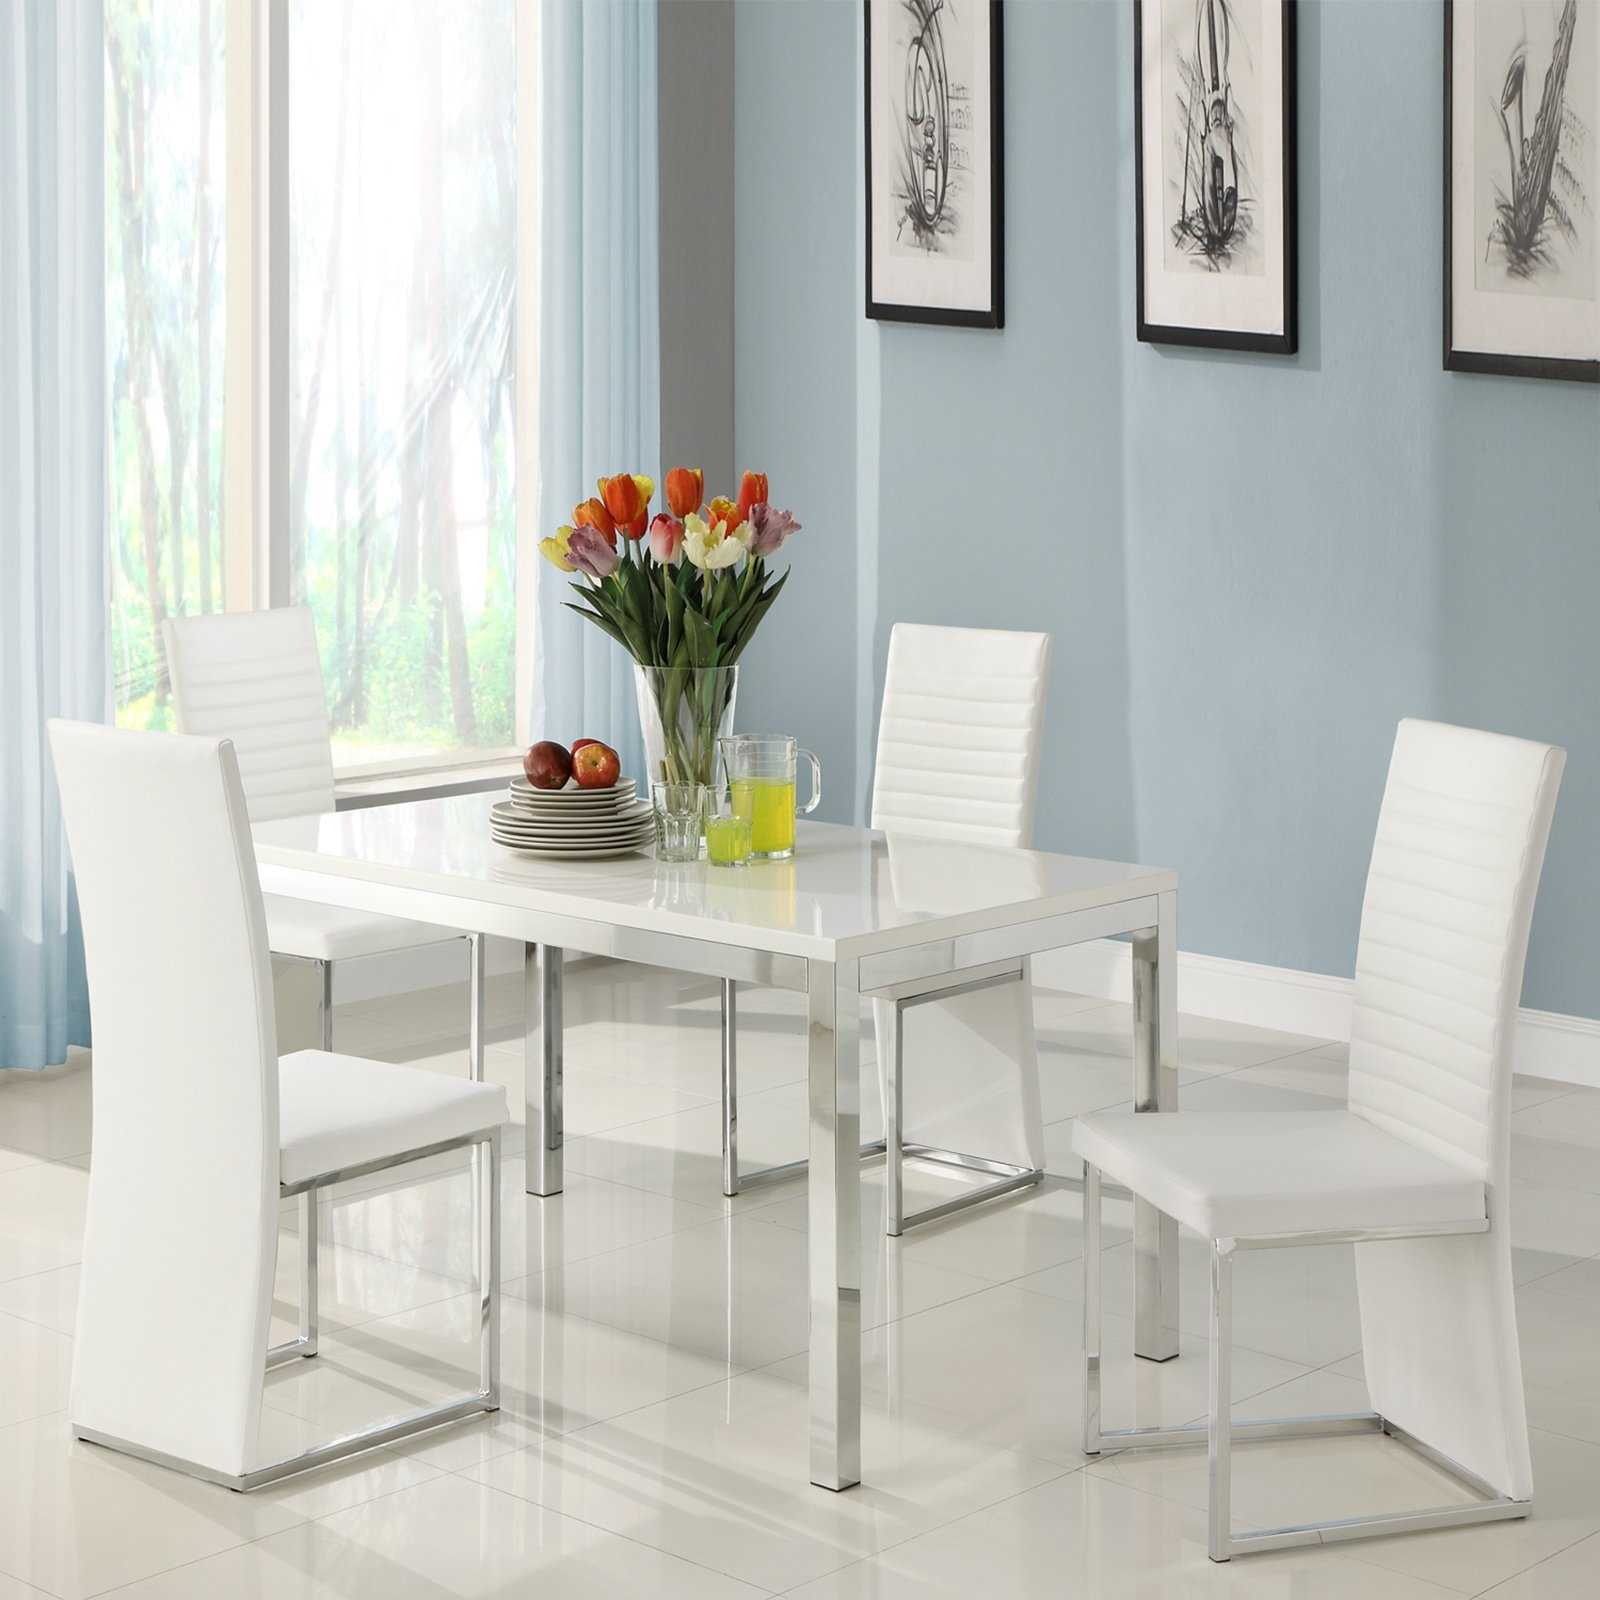 Chrome Dining Room Sets For Most Recent Homelegance Clarice 5 Piece Chrome Dining Table Set – Modern White (View 14 of 25)